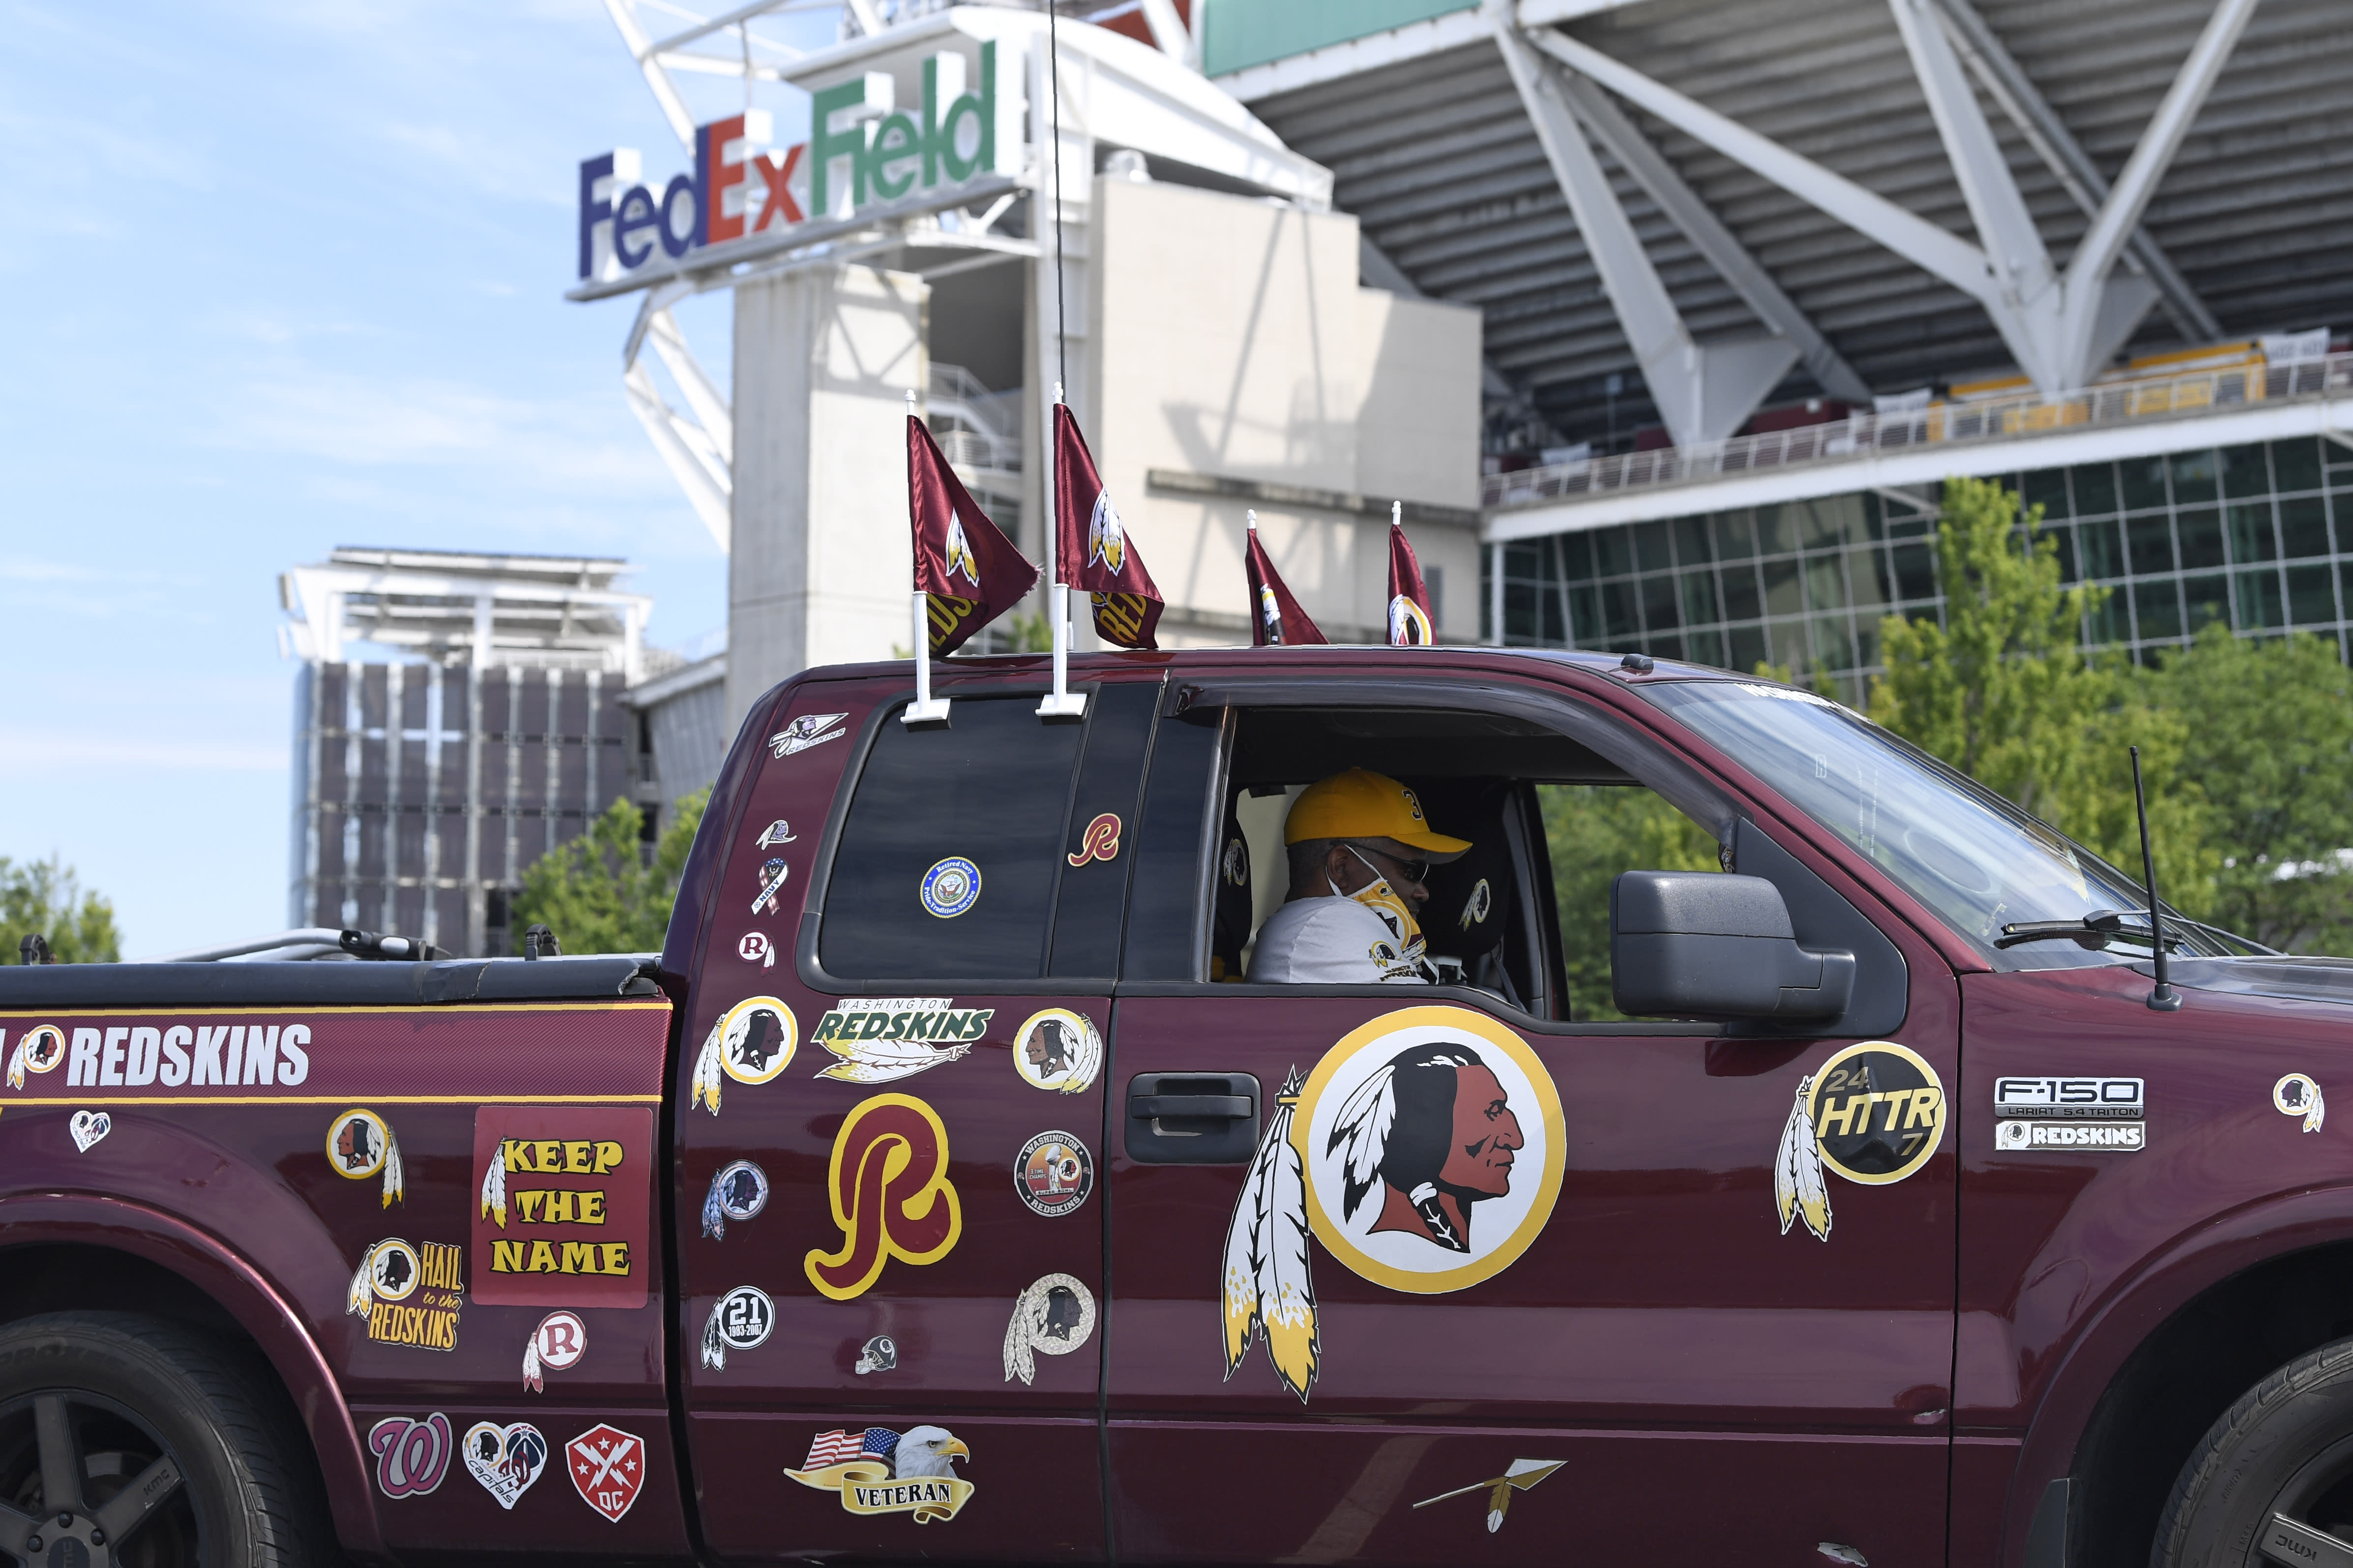 """Rodney Johnson of Chesapeake, Va., sits in his truck outside FedEx Field in Landover, Md., Monday, July 13, 2020. The Washington NFL franchise announced Monday that it will drop the """"Redskins"""" name and Indian head logo immediately, bowing to decades of criticism that they are offensive to Native Americans. (AP Photo/Susan Walsh)"""